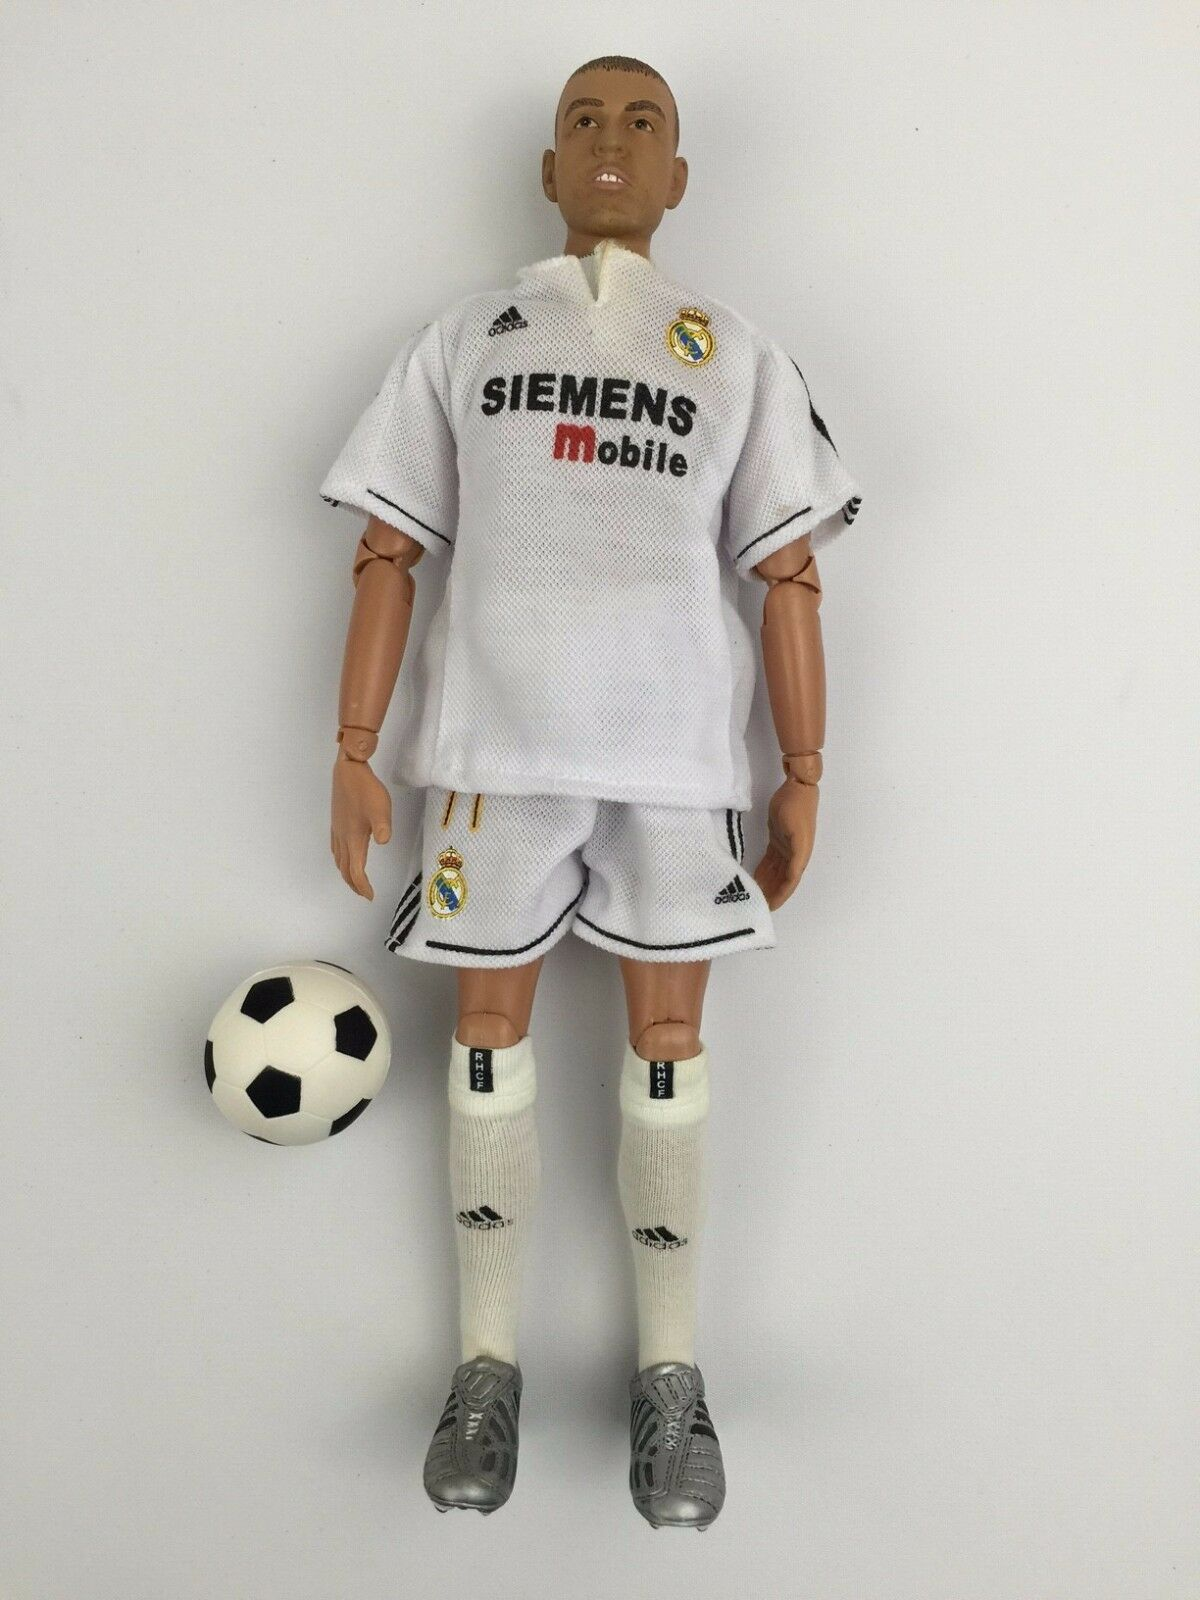 Soccer Action Figure Ronaldo 1/6th Scale Action Figure Made By GameToy